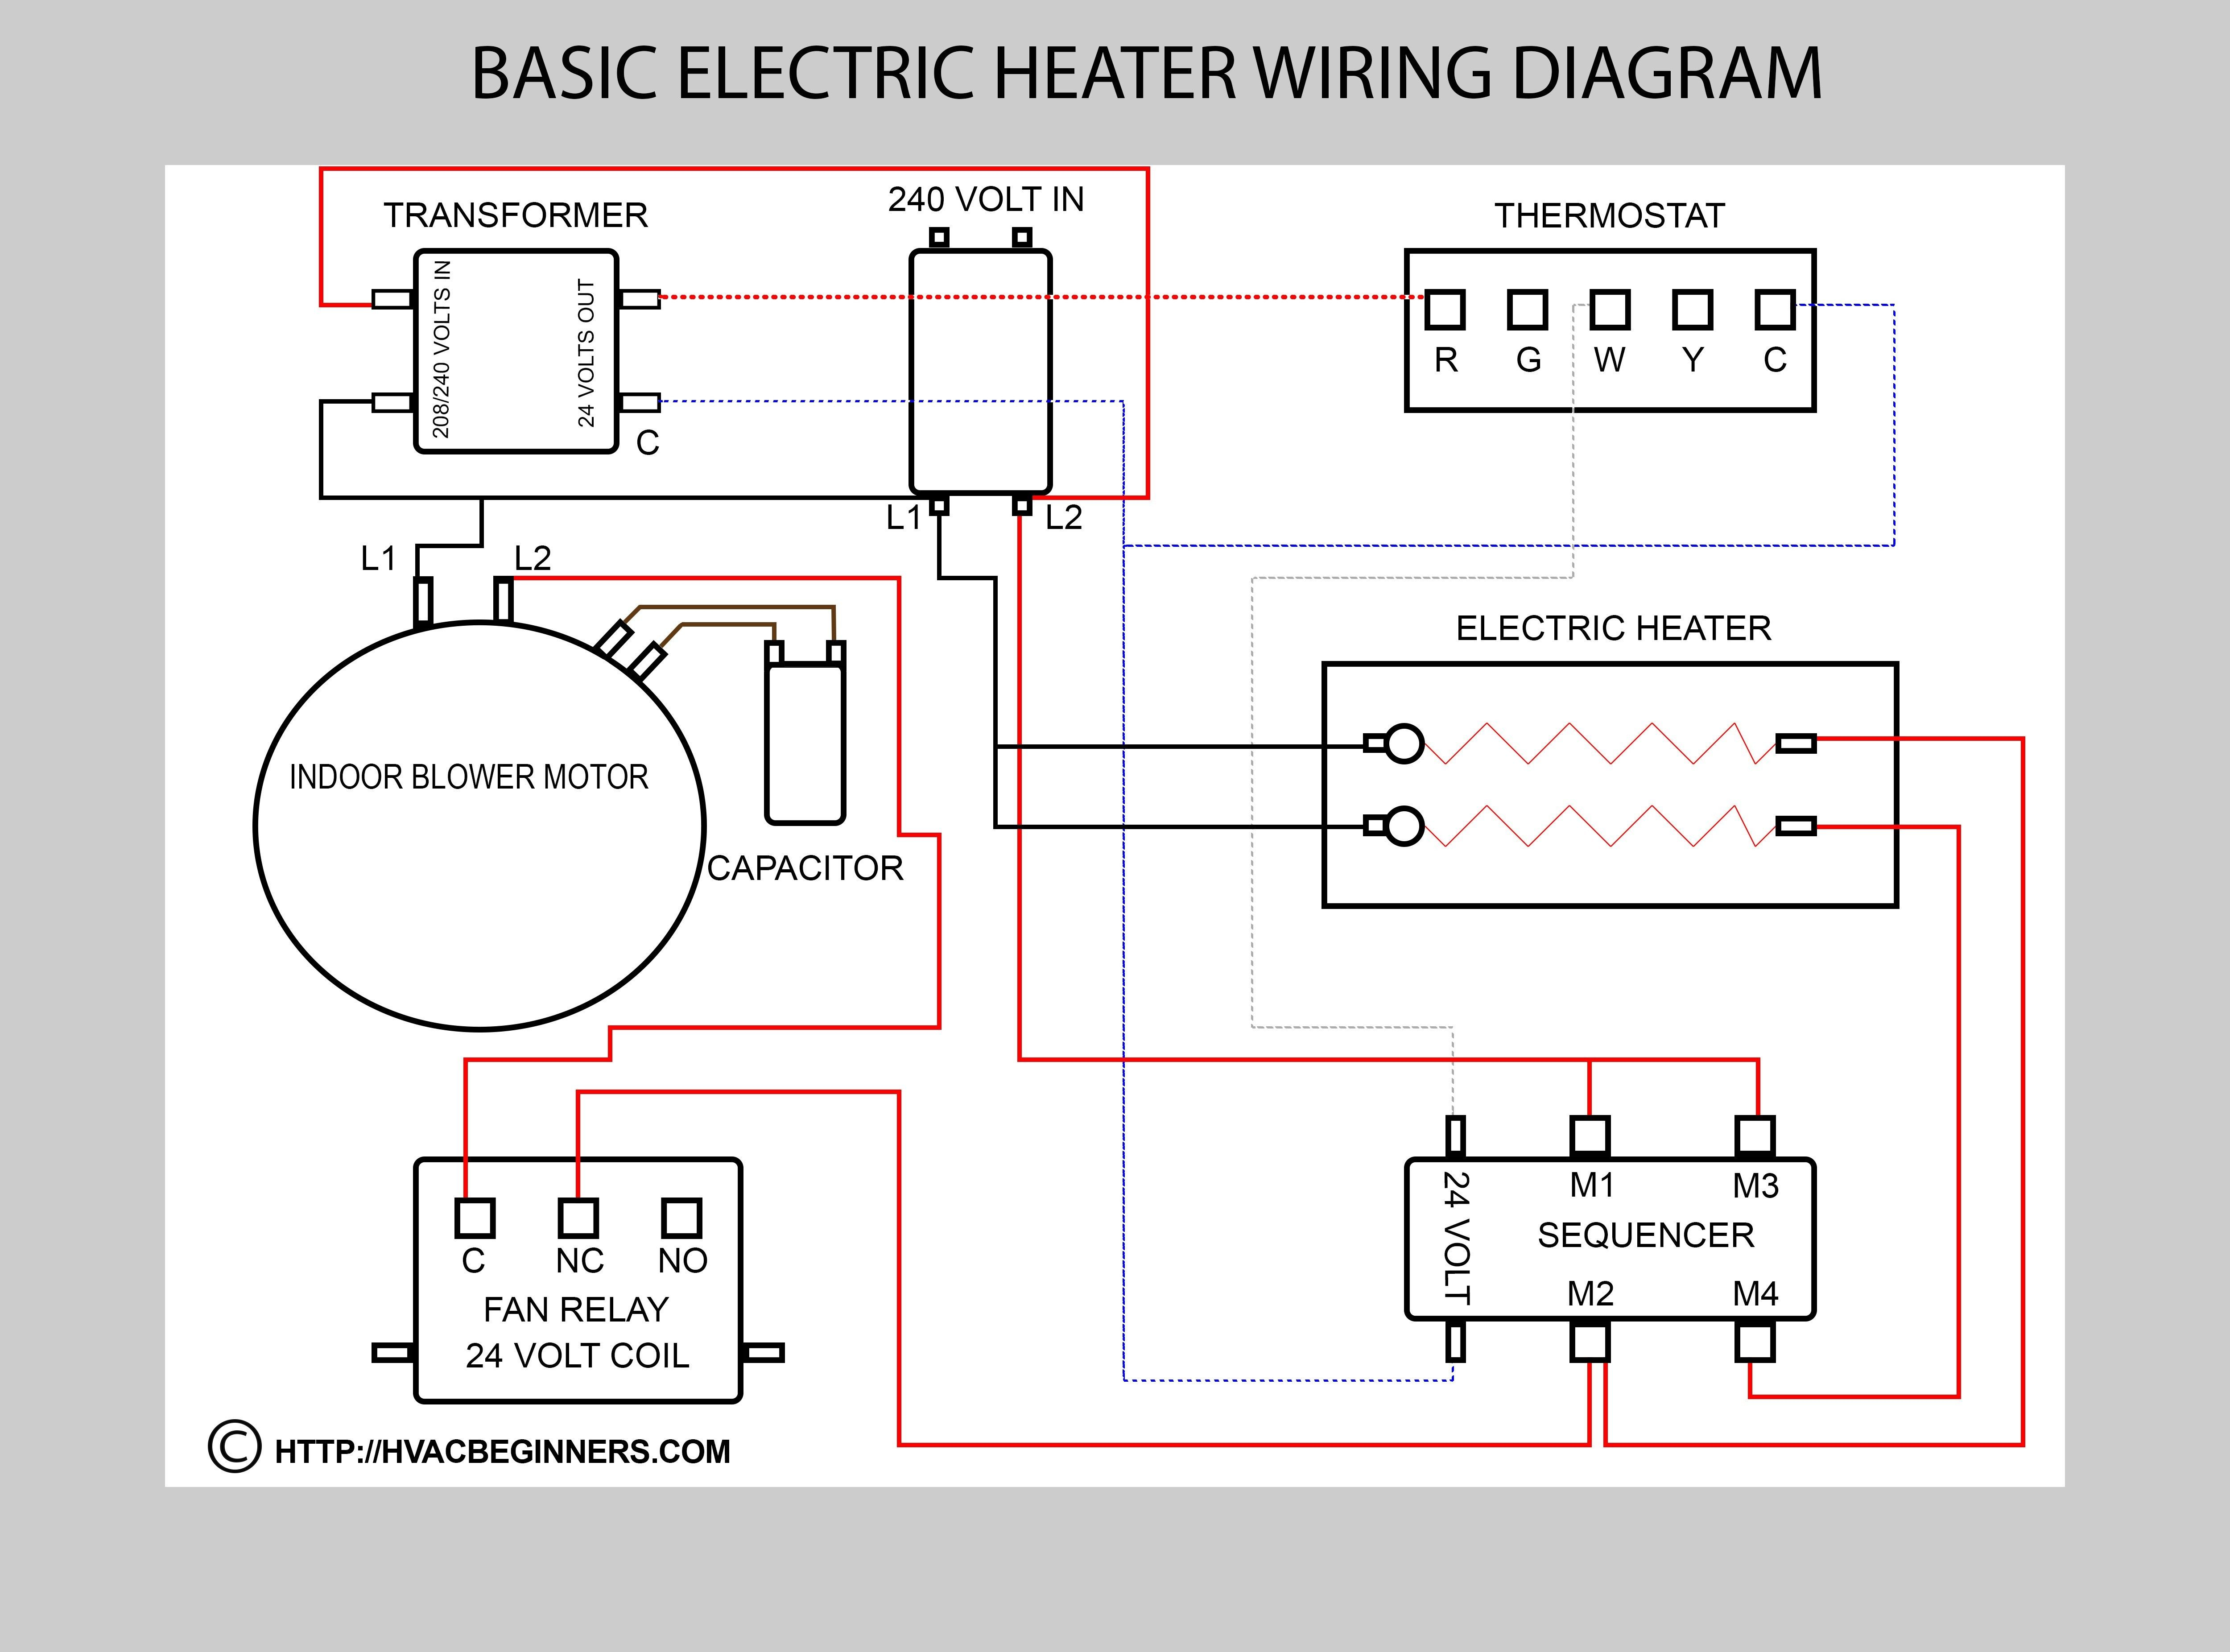 New Wiring Diagram For A Smart House Diagram Diagramsample Diagramtemplate Wiringdiagr Basic Electrical Wiring Thermostat Wiring Electrical Circuit Diagram